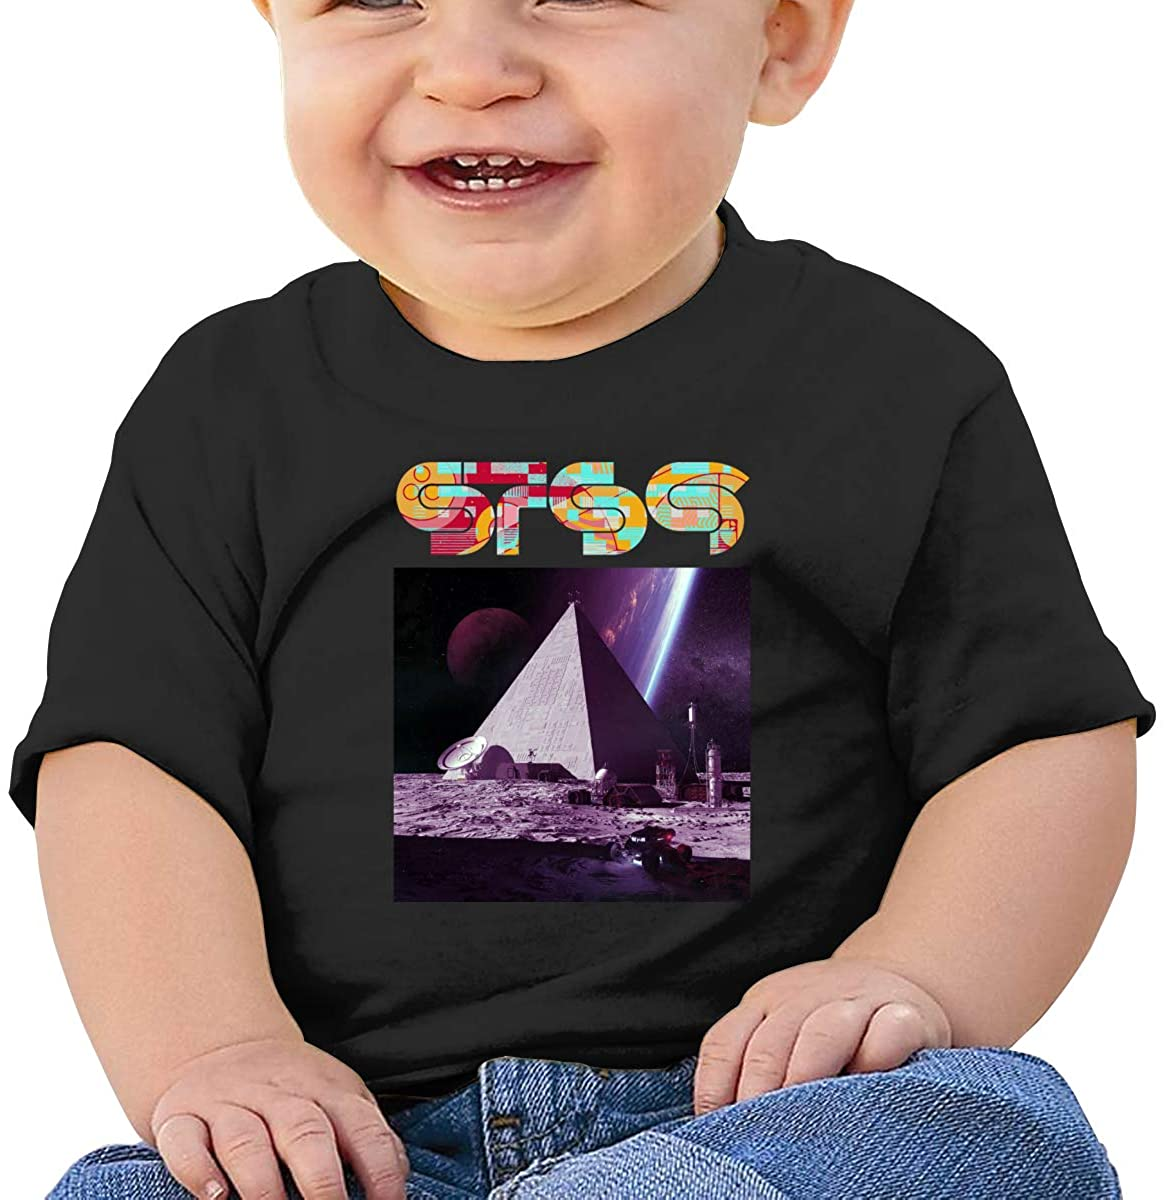 AP.Room Colorful Short-Sleeved Comfortable and Refreshing Shirt Sts9 Baby T-Shirt